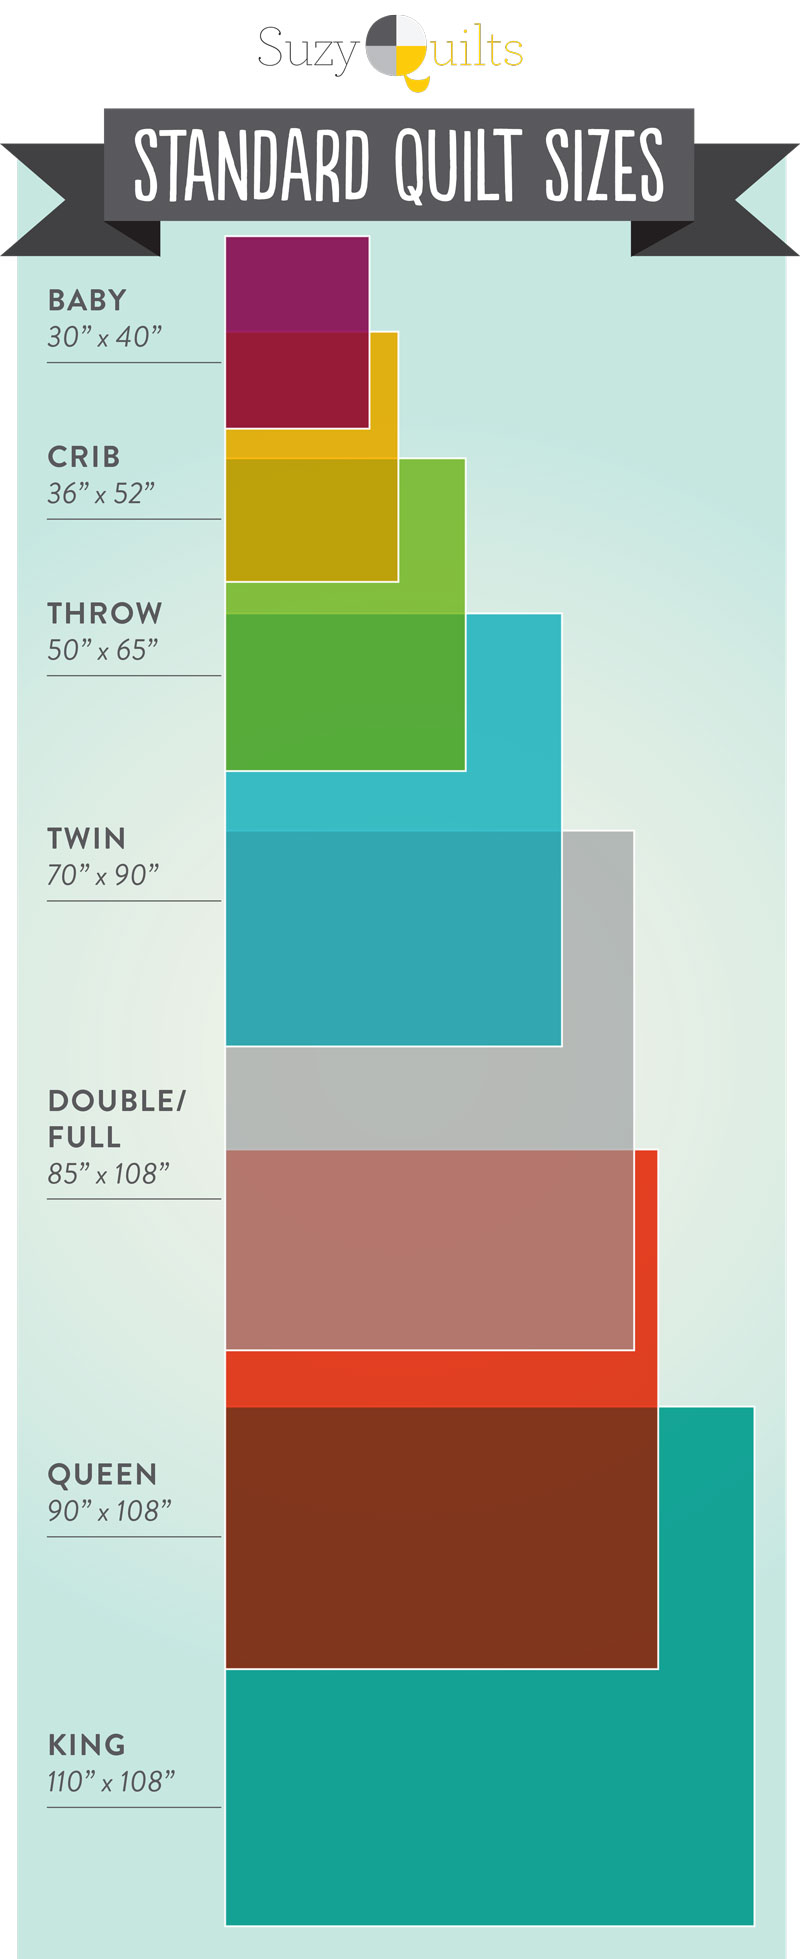 Quilt_Sizes_Infographic.jpg